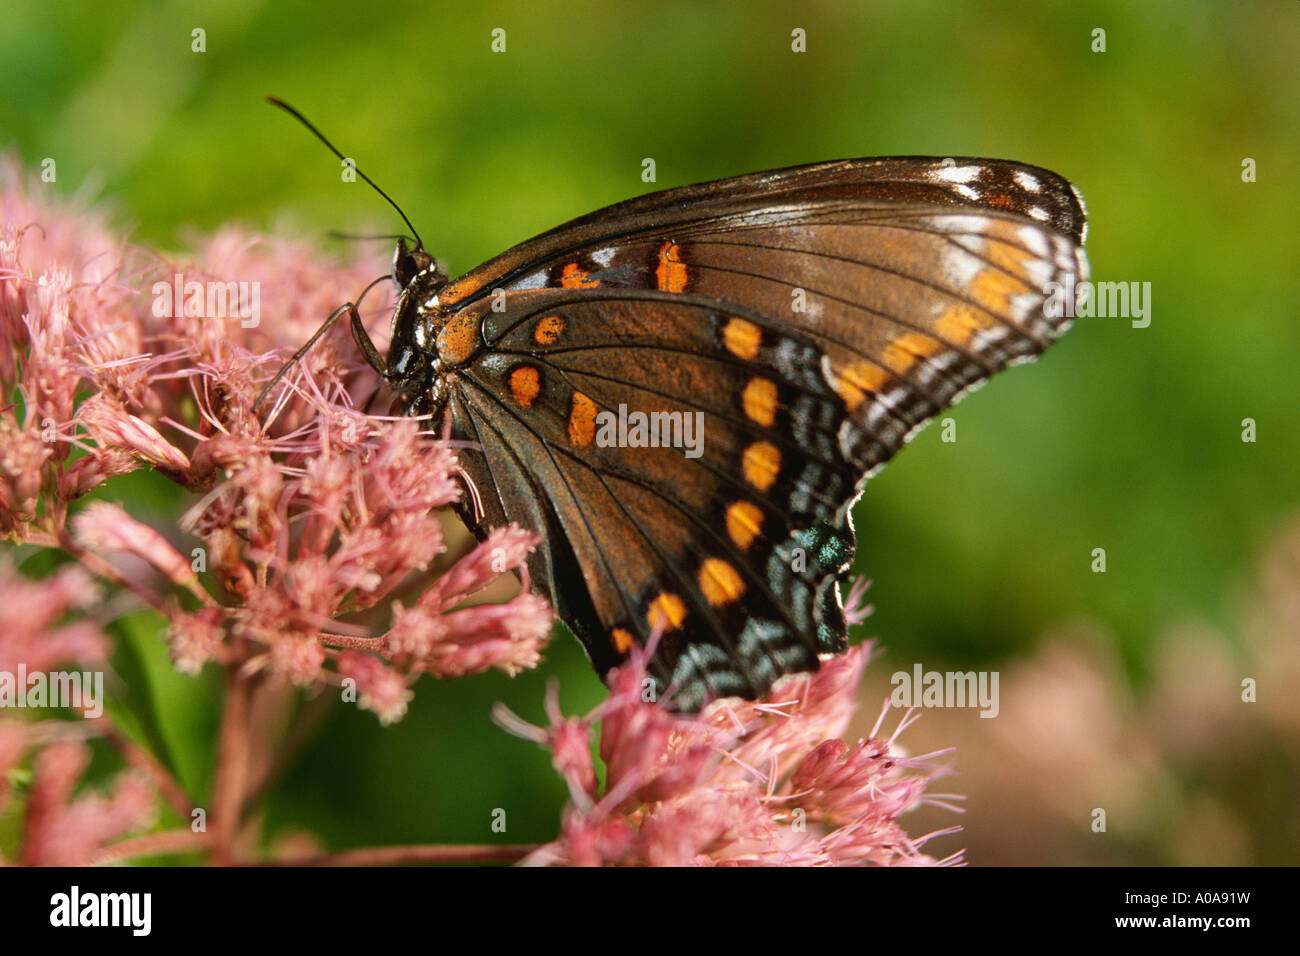 Red-spotted purple butterfly (Limenitis arthemis astyanax) - Stock Image